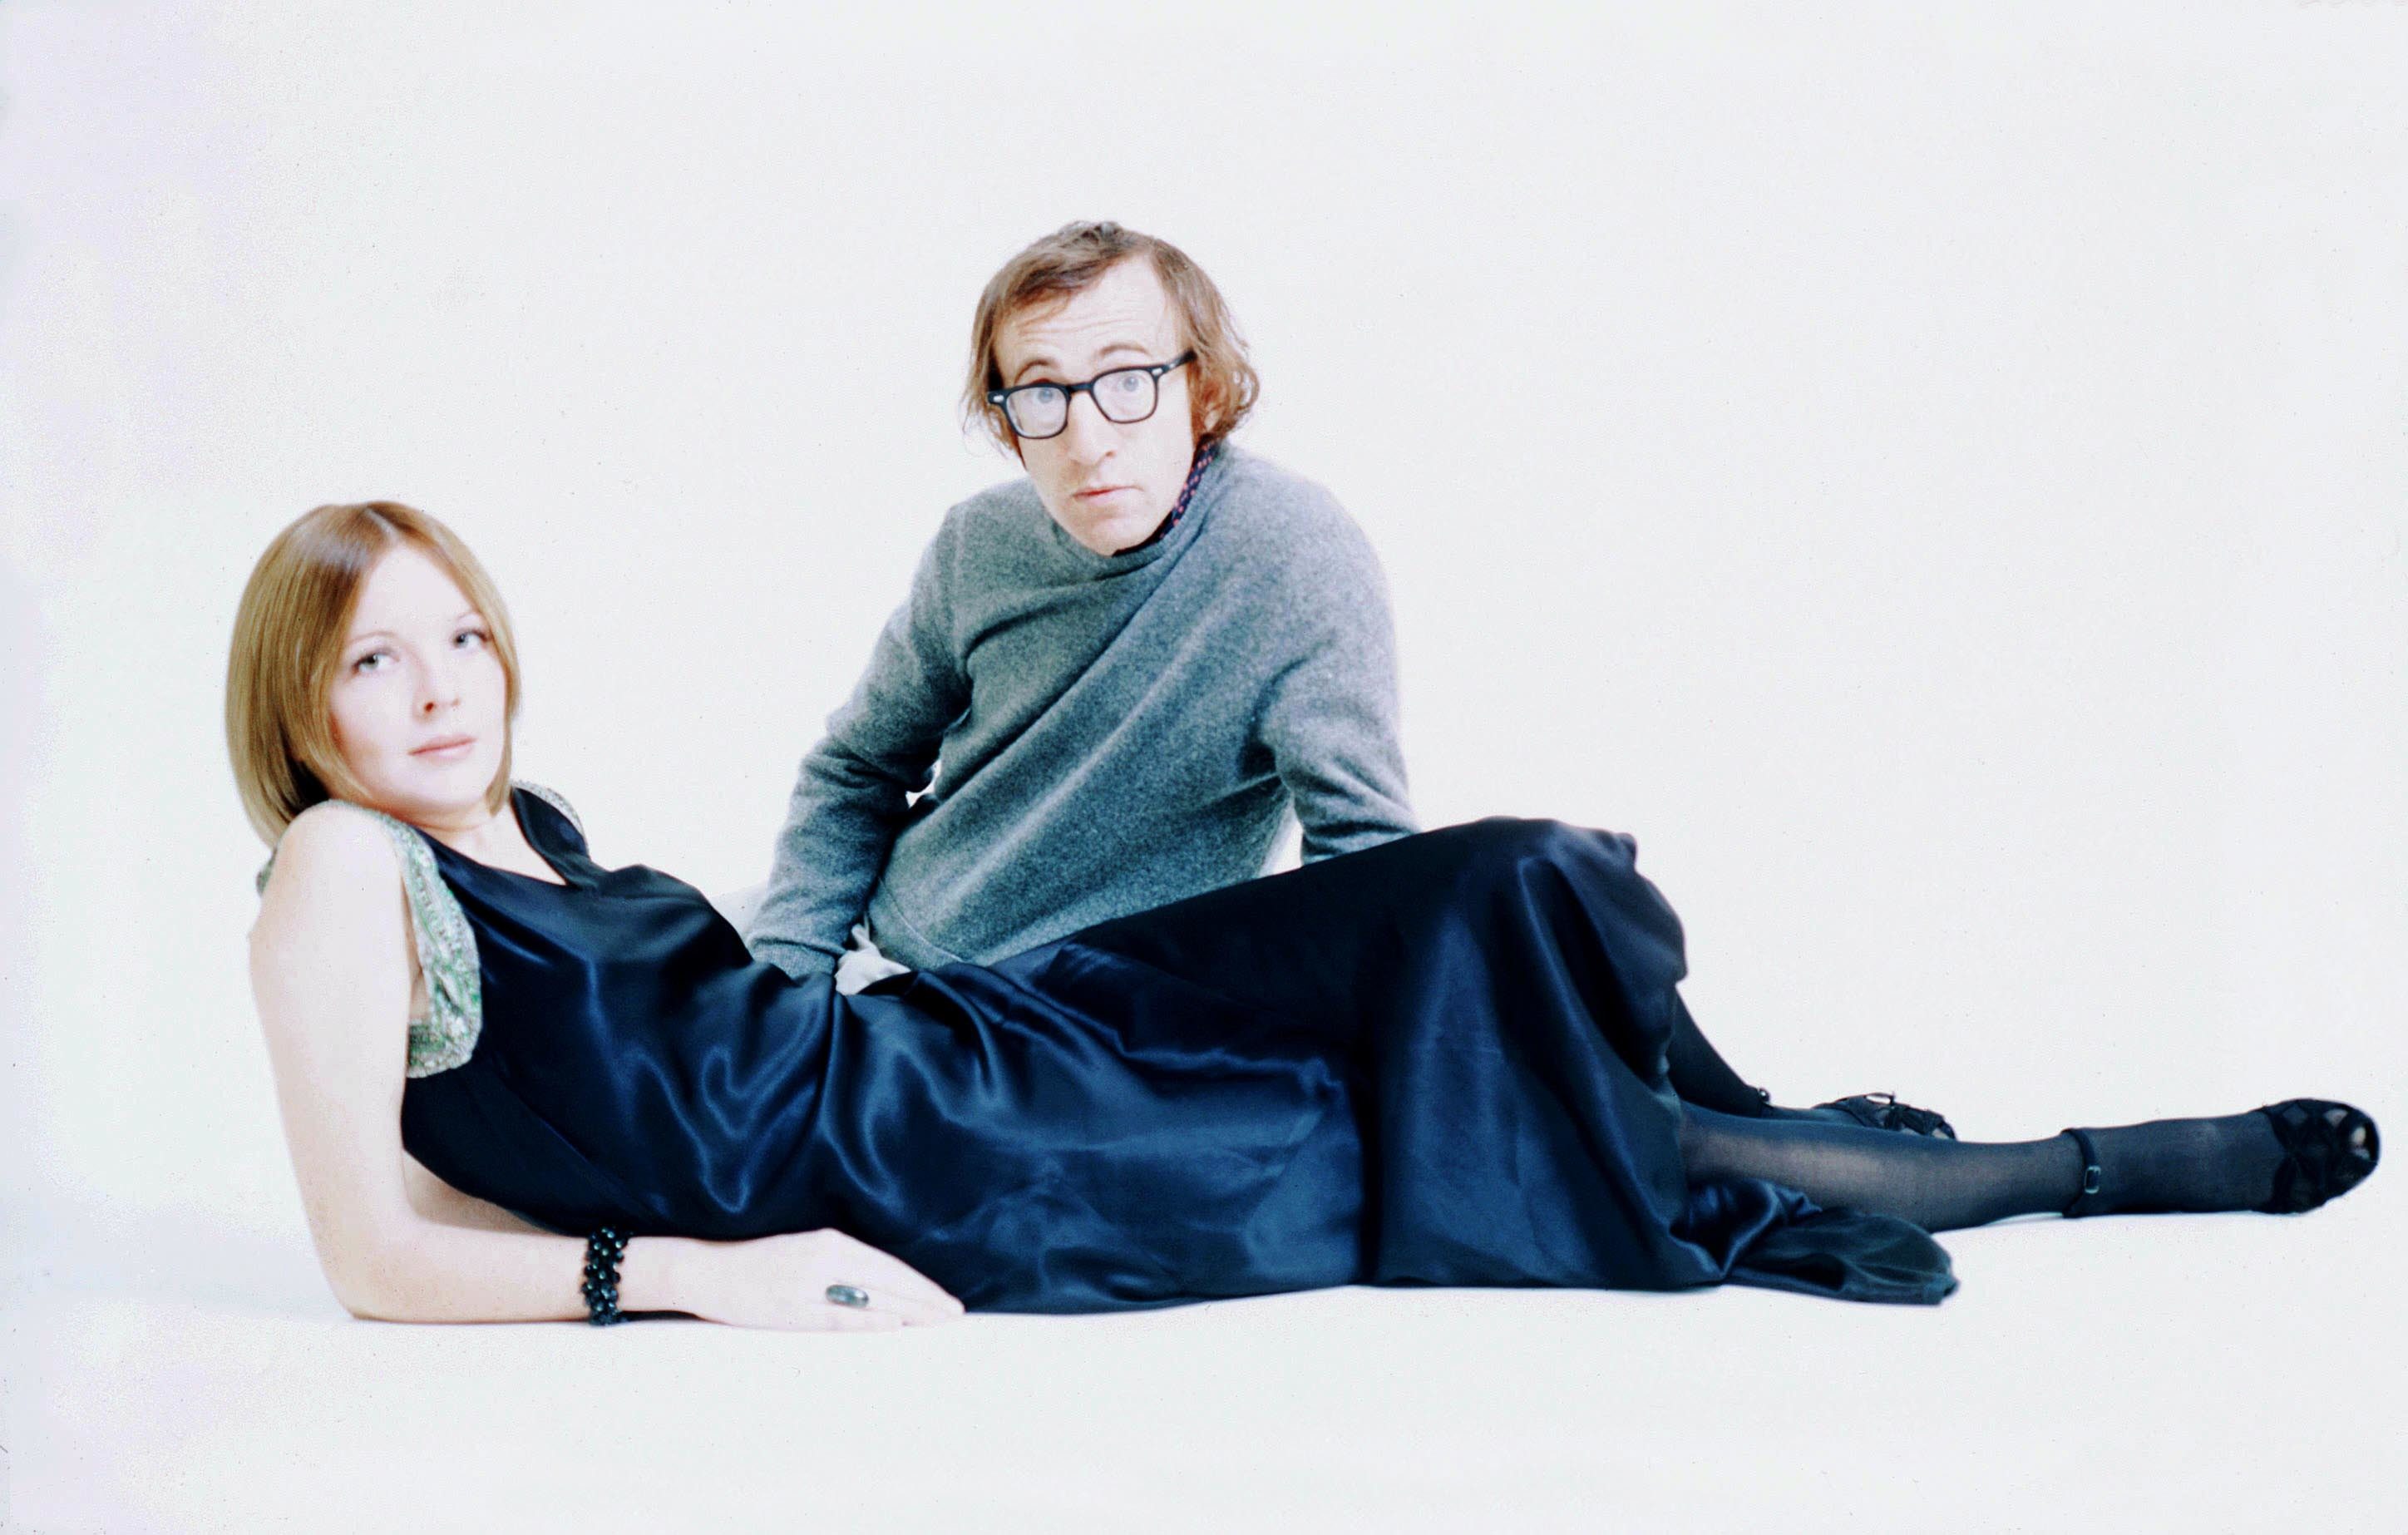 Diane Keaton and Woody Allen pose together in the 1970s.